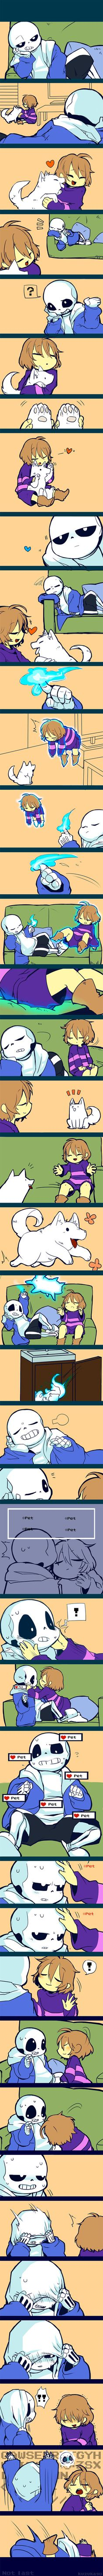 Undertale by kuzukago on DeviantArt